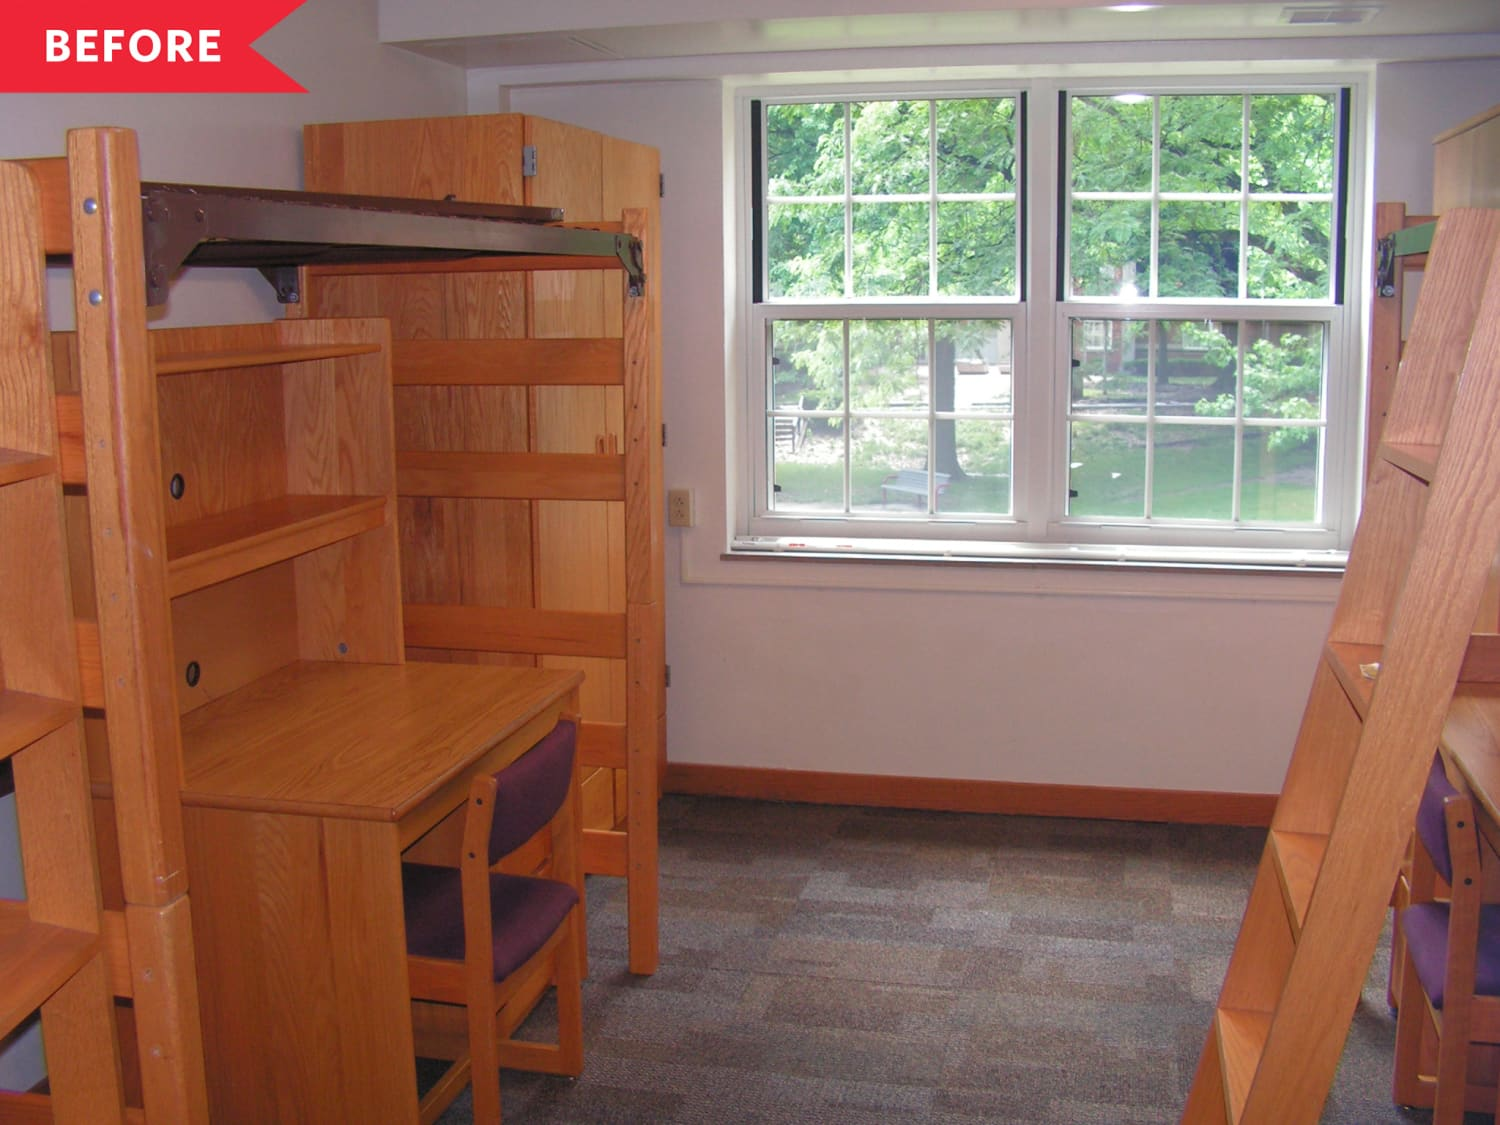 Before & After: These Three Dorms Are Almost Unrecognizable After Getting Decorated